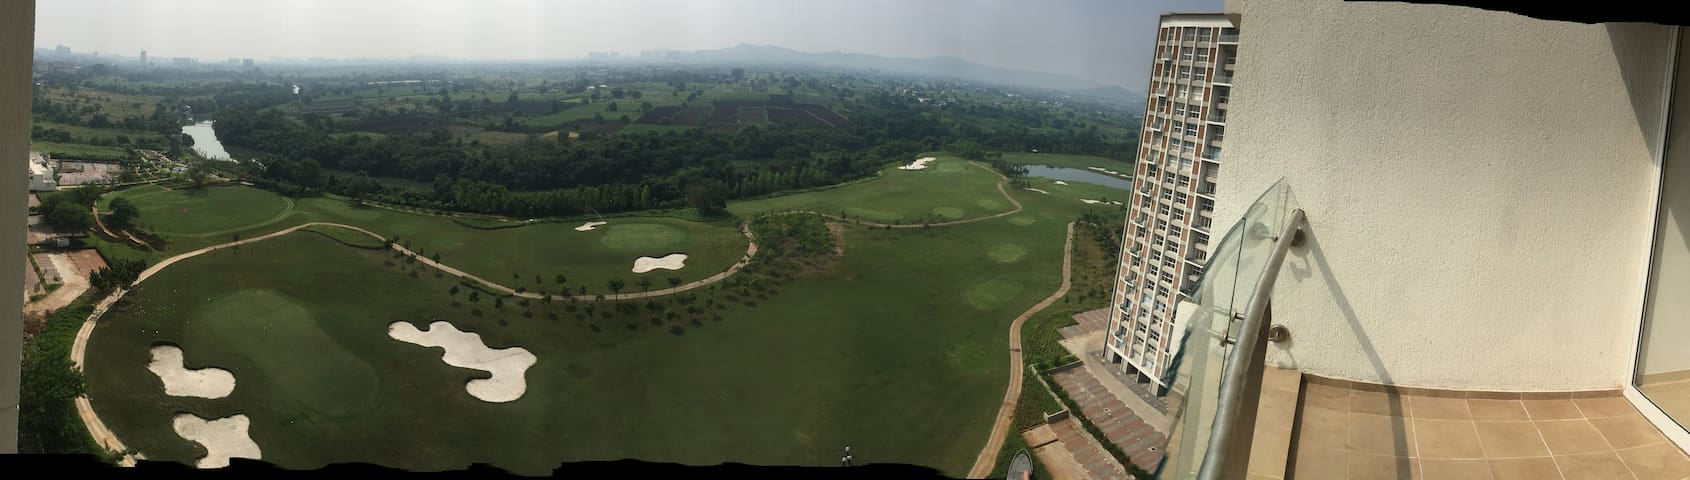 A 3 Bedroom Flat in a riverside complex with a view of Golf Course, River, and the Green Vistas Beyond. (This is a panorama photo - best viewed on mobile)